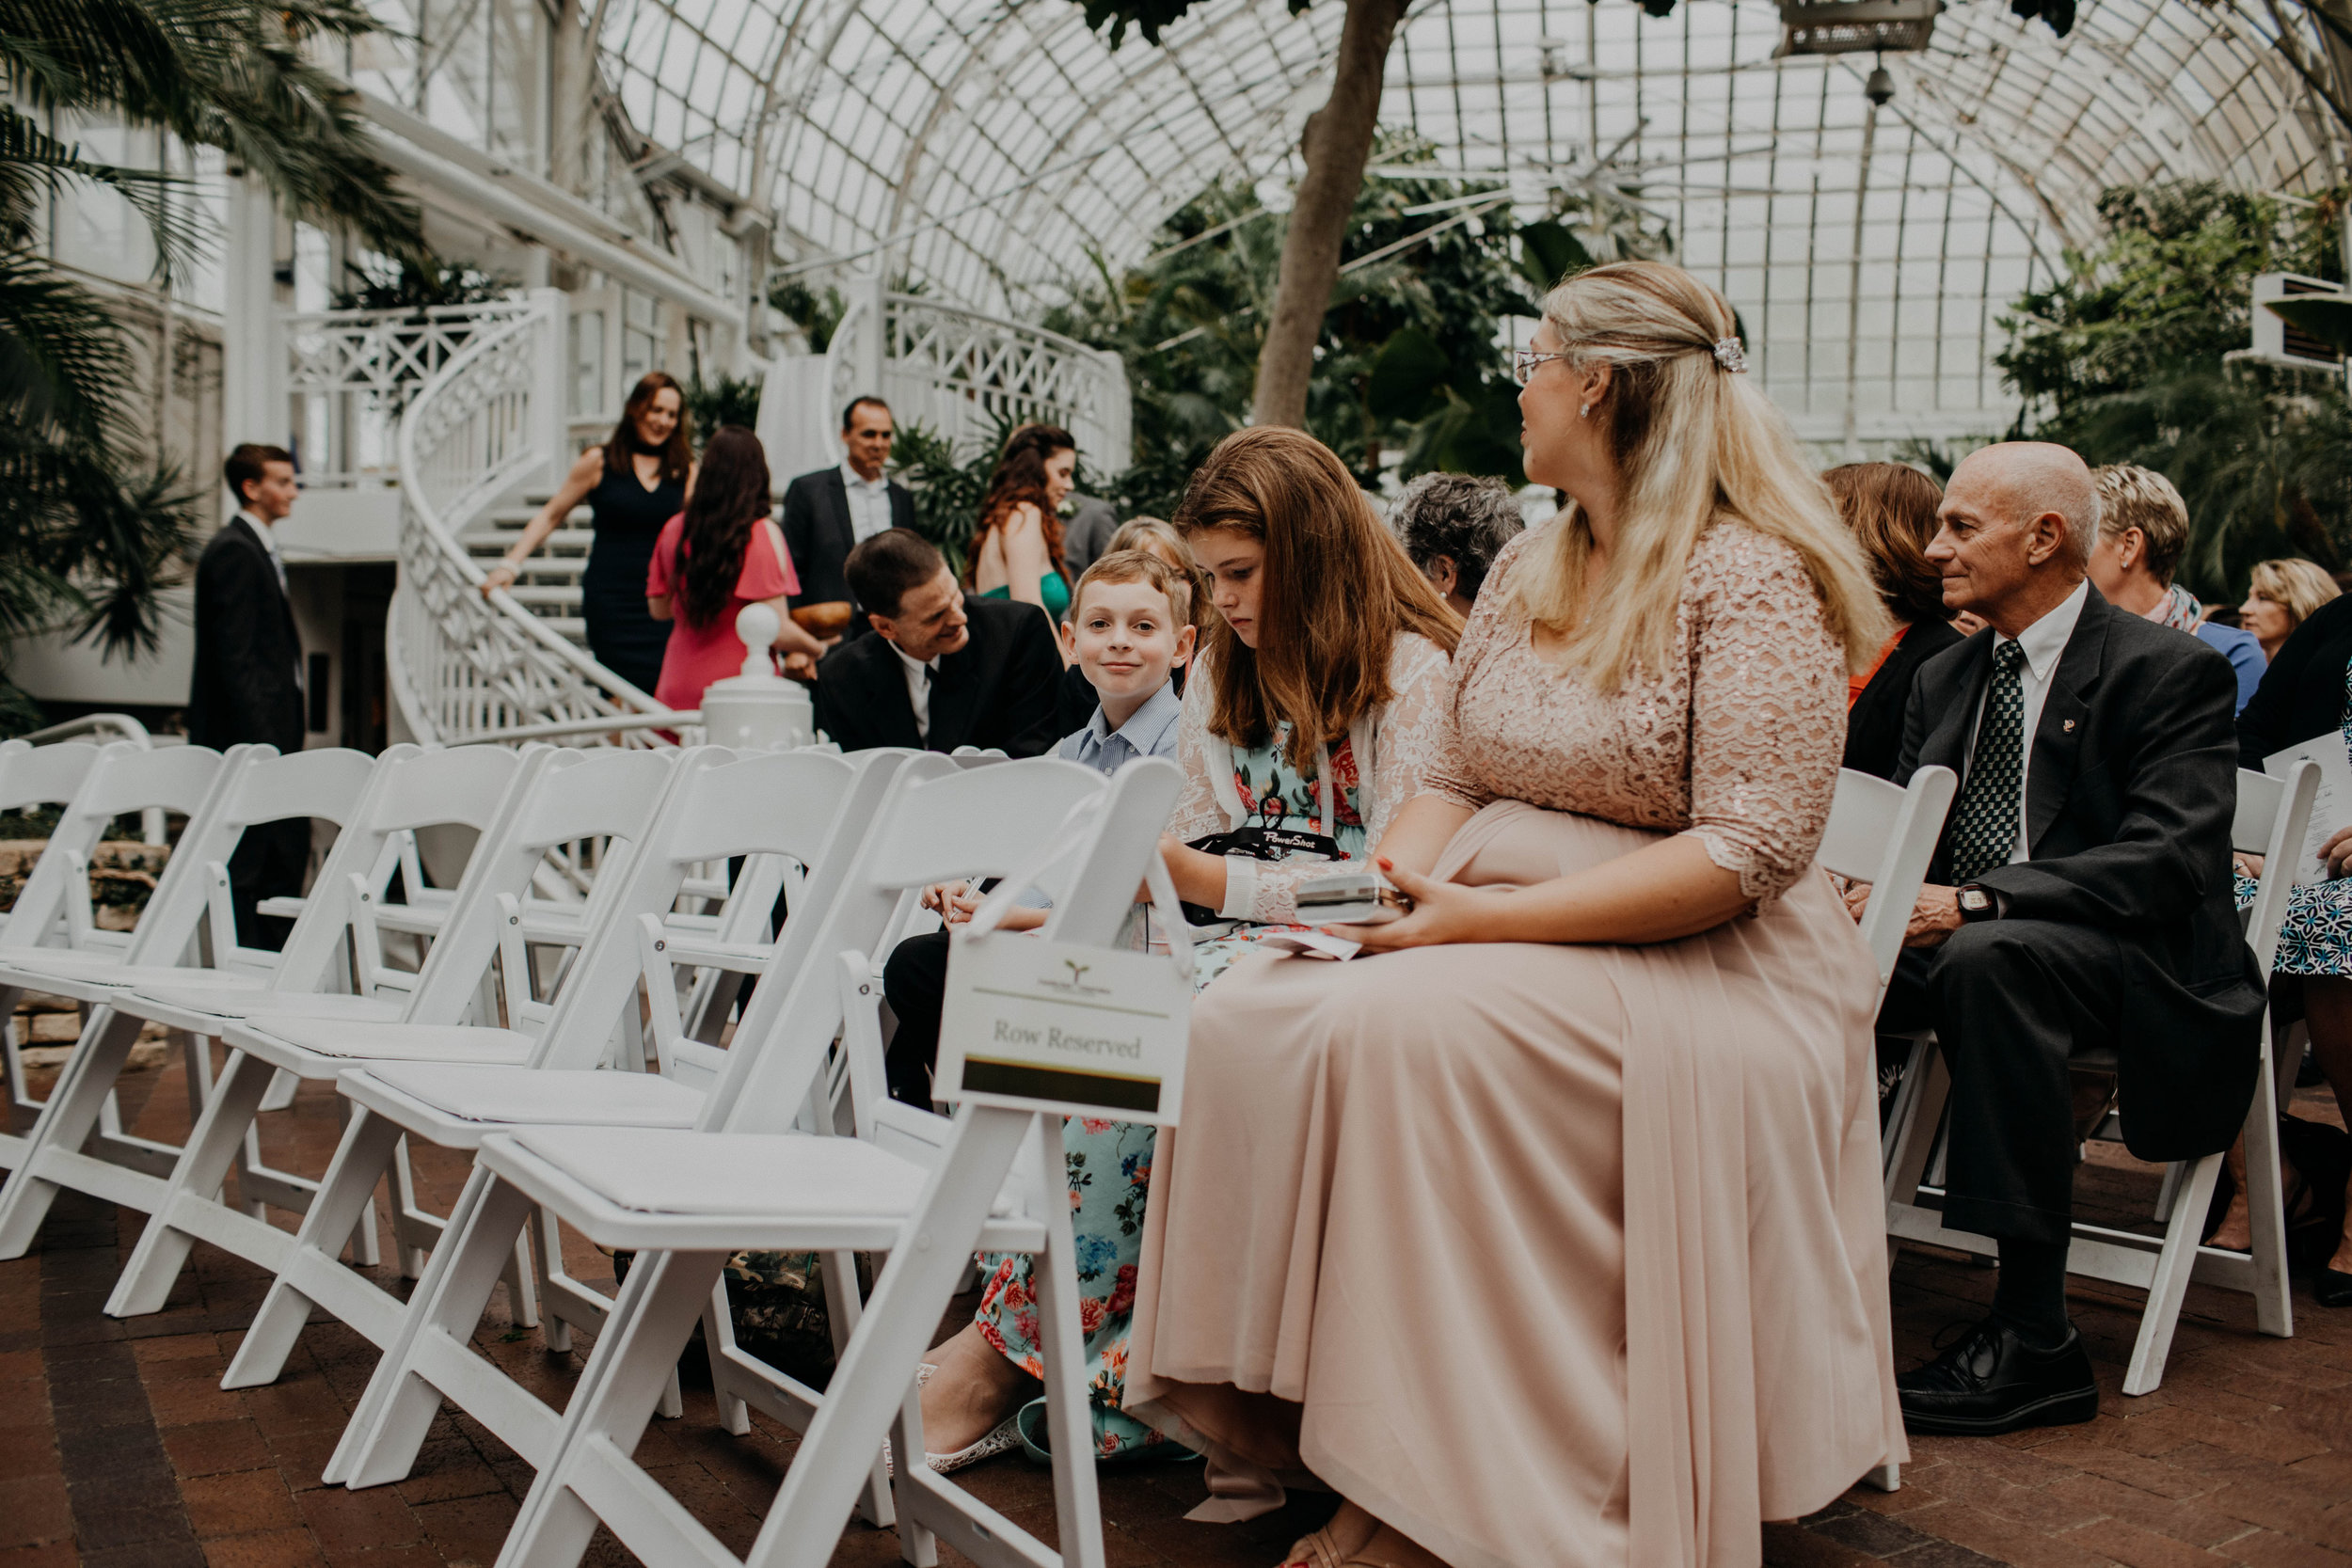 franklin park conservatory wedding columbus ohio wedding photographer grace e jones photography252.jpg